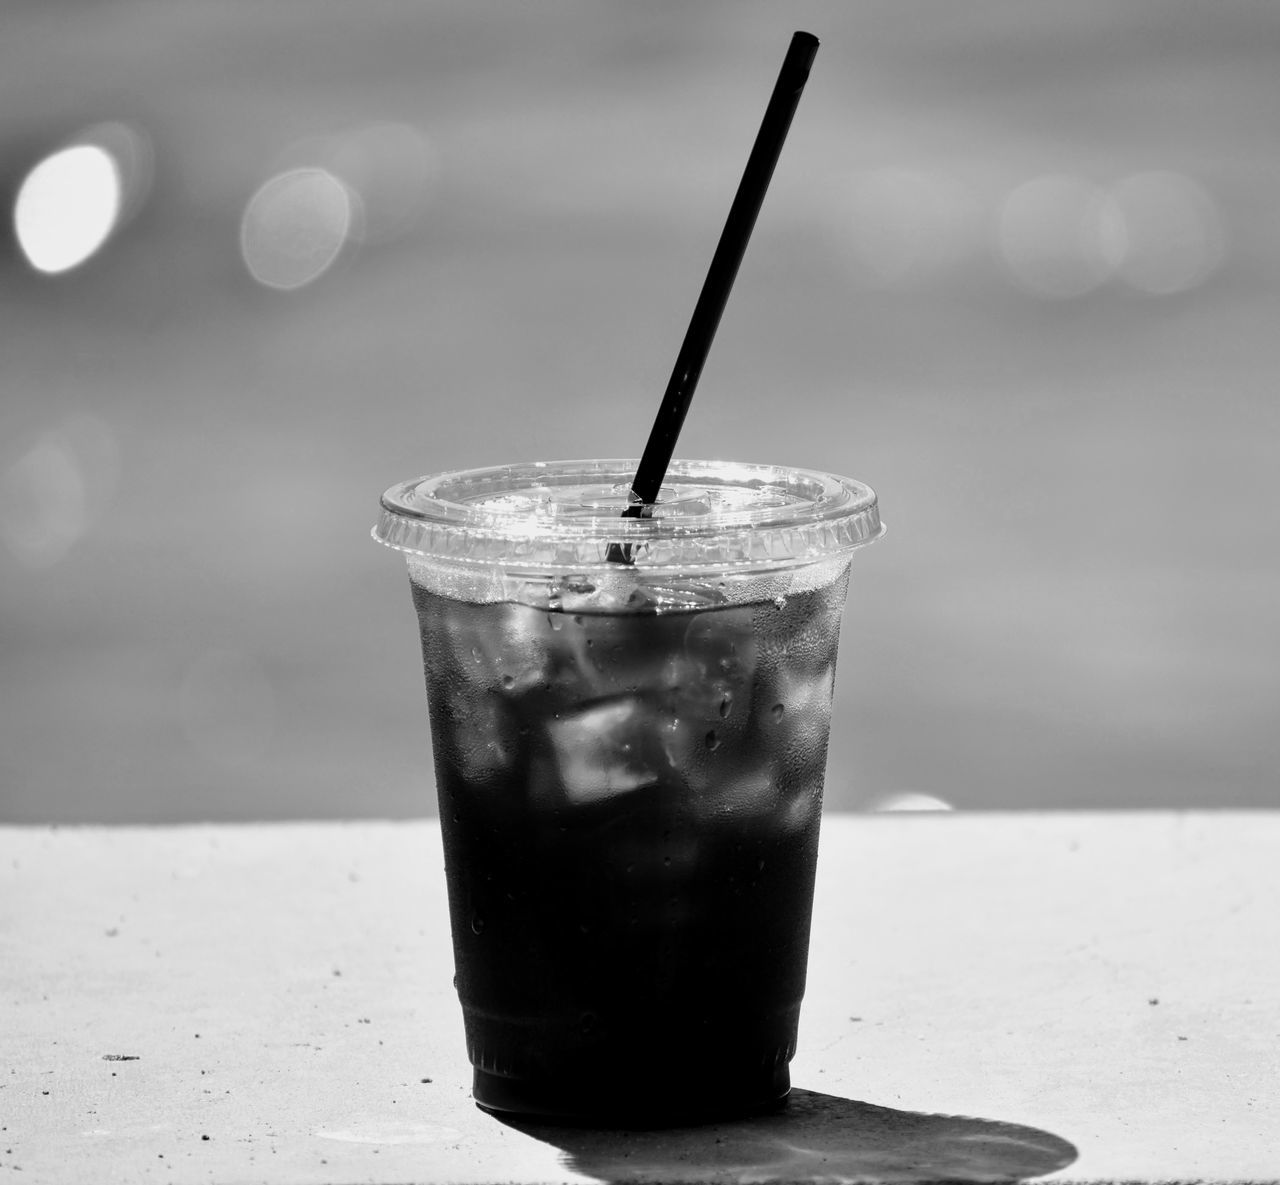 Ice coffee Drinking Straw Drink Drinking Glass Cola Refreshment Food And Drink Ice Cube No People Table Cold Temperature Indoors  Freshness Tonic Water Day Close-up